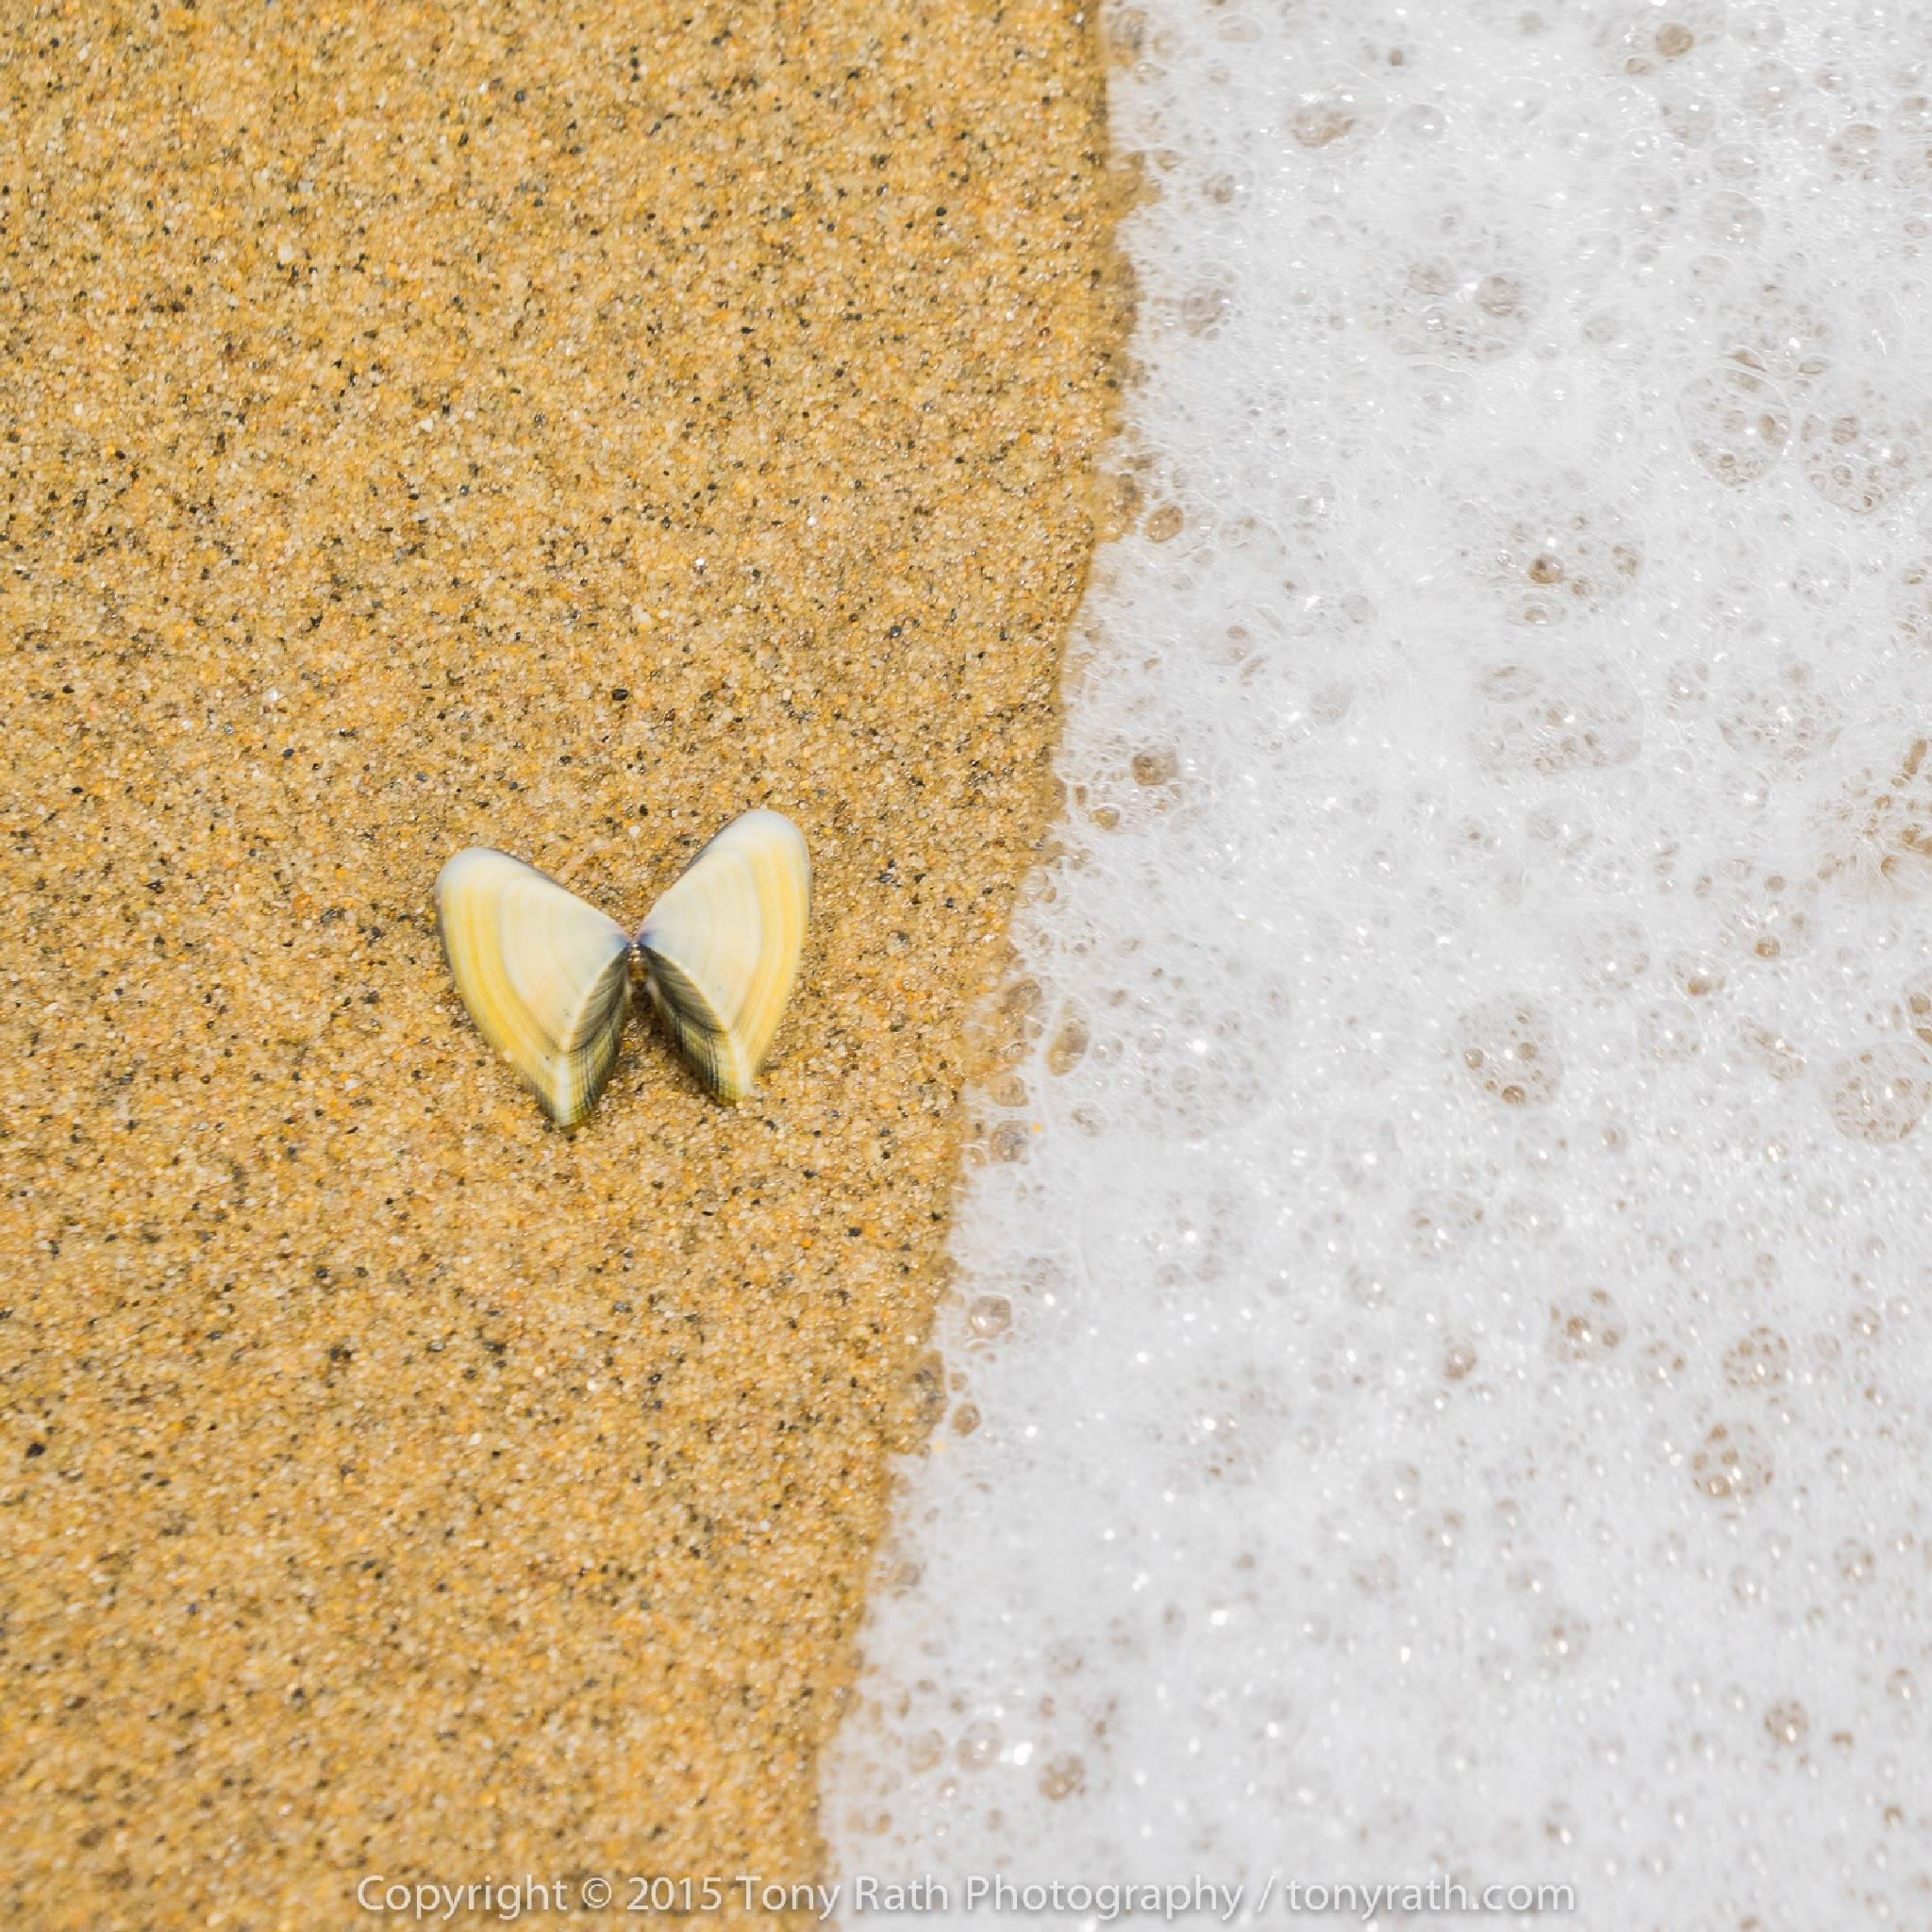 The rare shoreline butterfly by Tony Rath